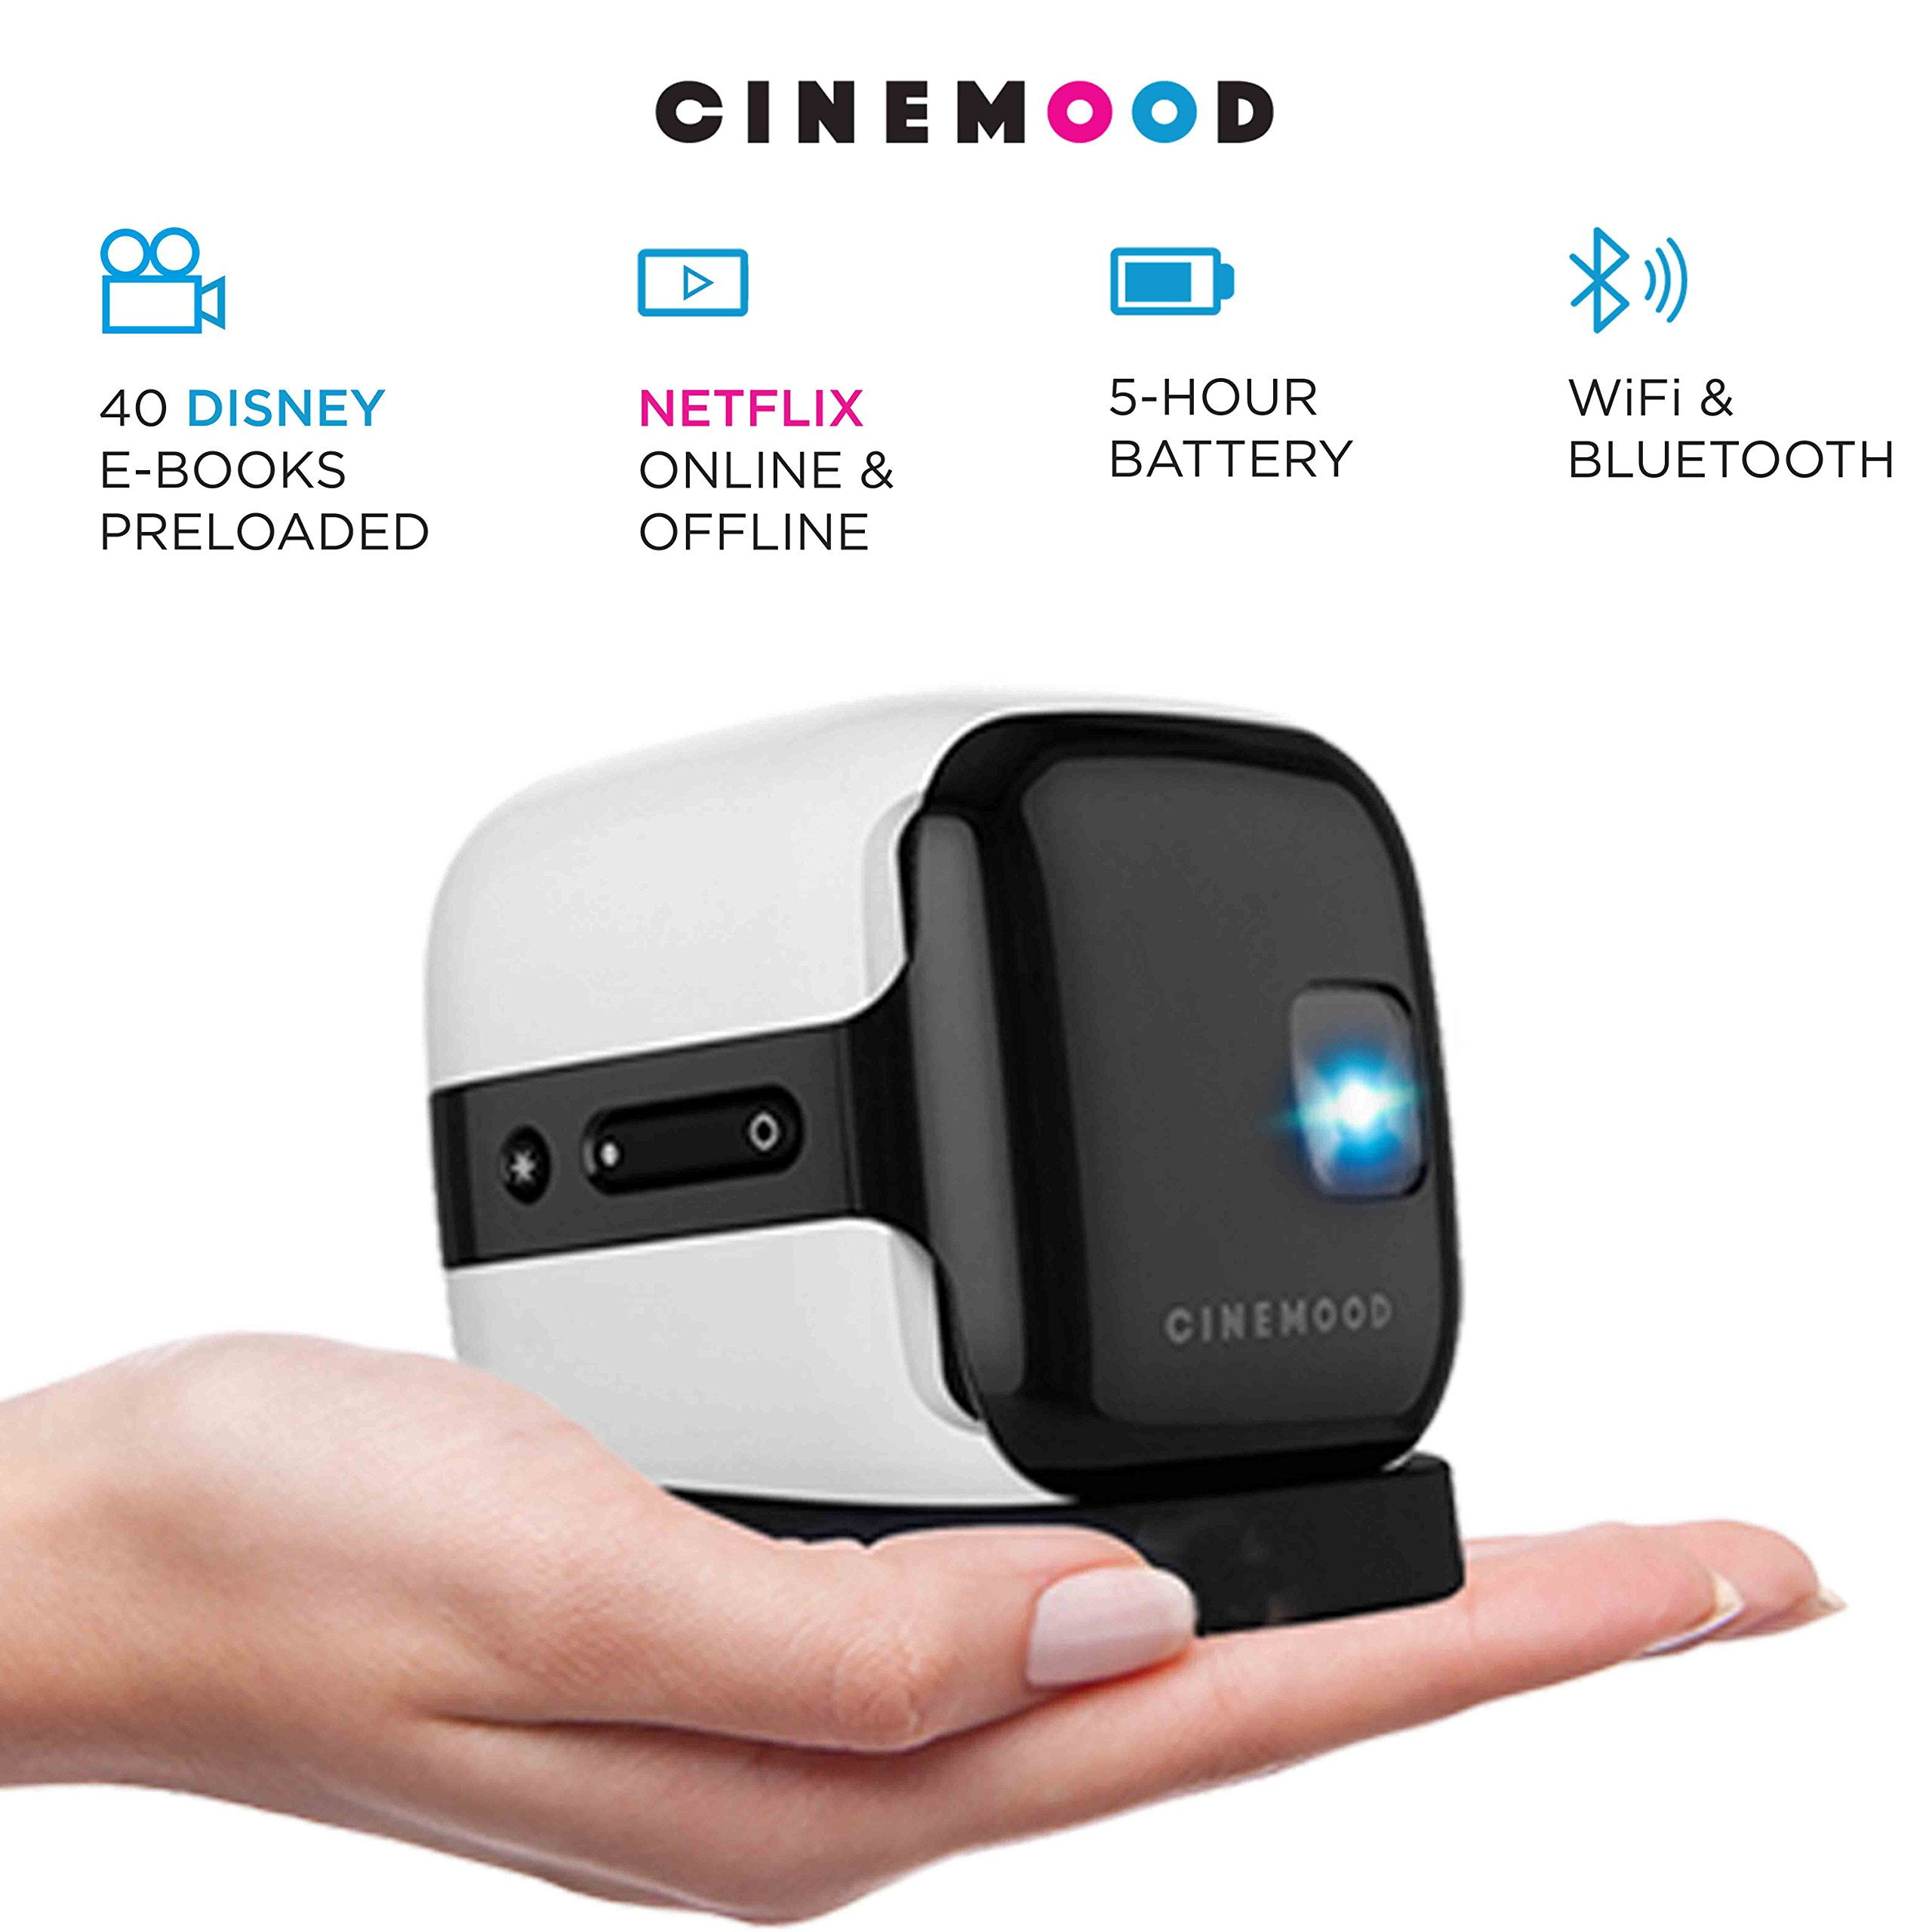 CINEMOOD 3-in-1 Magic Cinema Now Includes Disney Family Favorites – Plus Streams Netflix, YouTube, and YouTube Kids too! Limited Time Special Price Offer